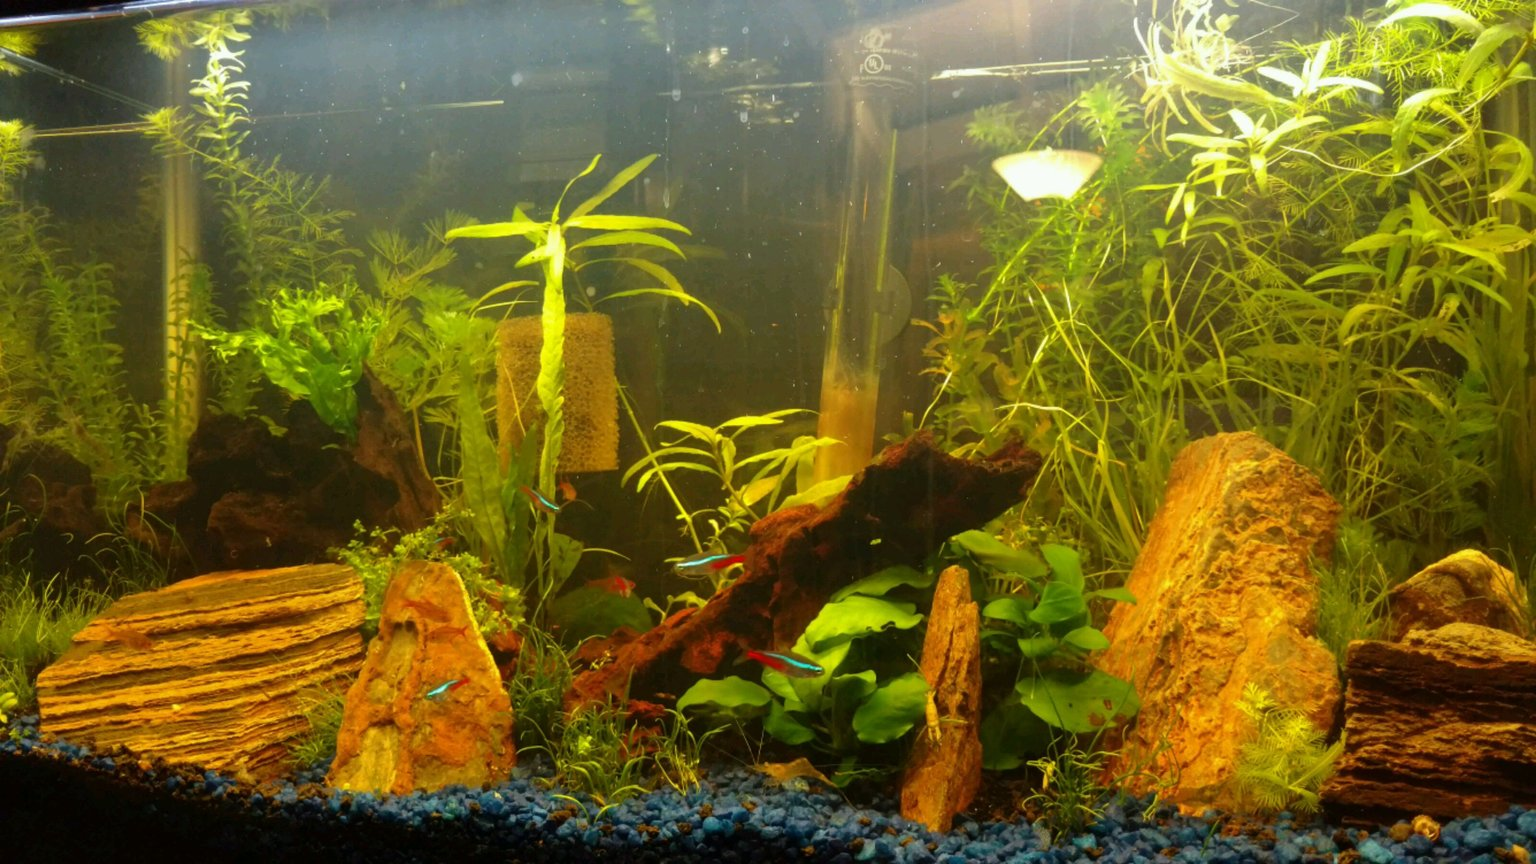 13 gallons planted tank (mostly live plants and fish) - 13G long Aquarium with Neon Tetras, Ember Tetras, Ghost and Red Cherry Shrimps, Otocinclus, HalfMoon Rosetail Betta, Pygmy Cories, Assassin Snails and Pond Snails